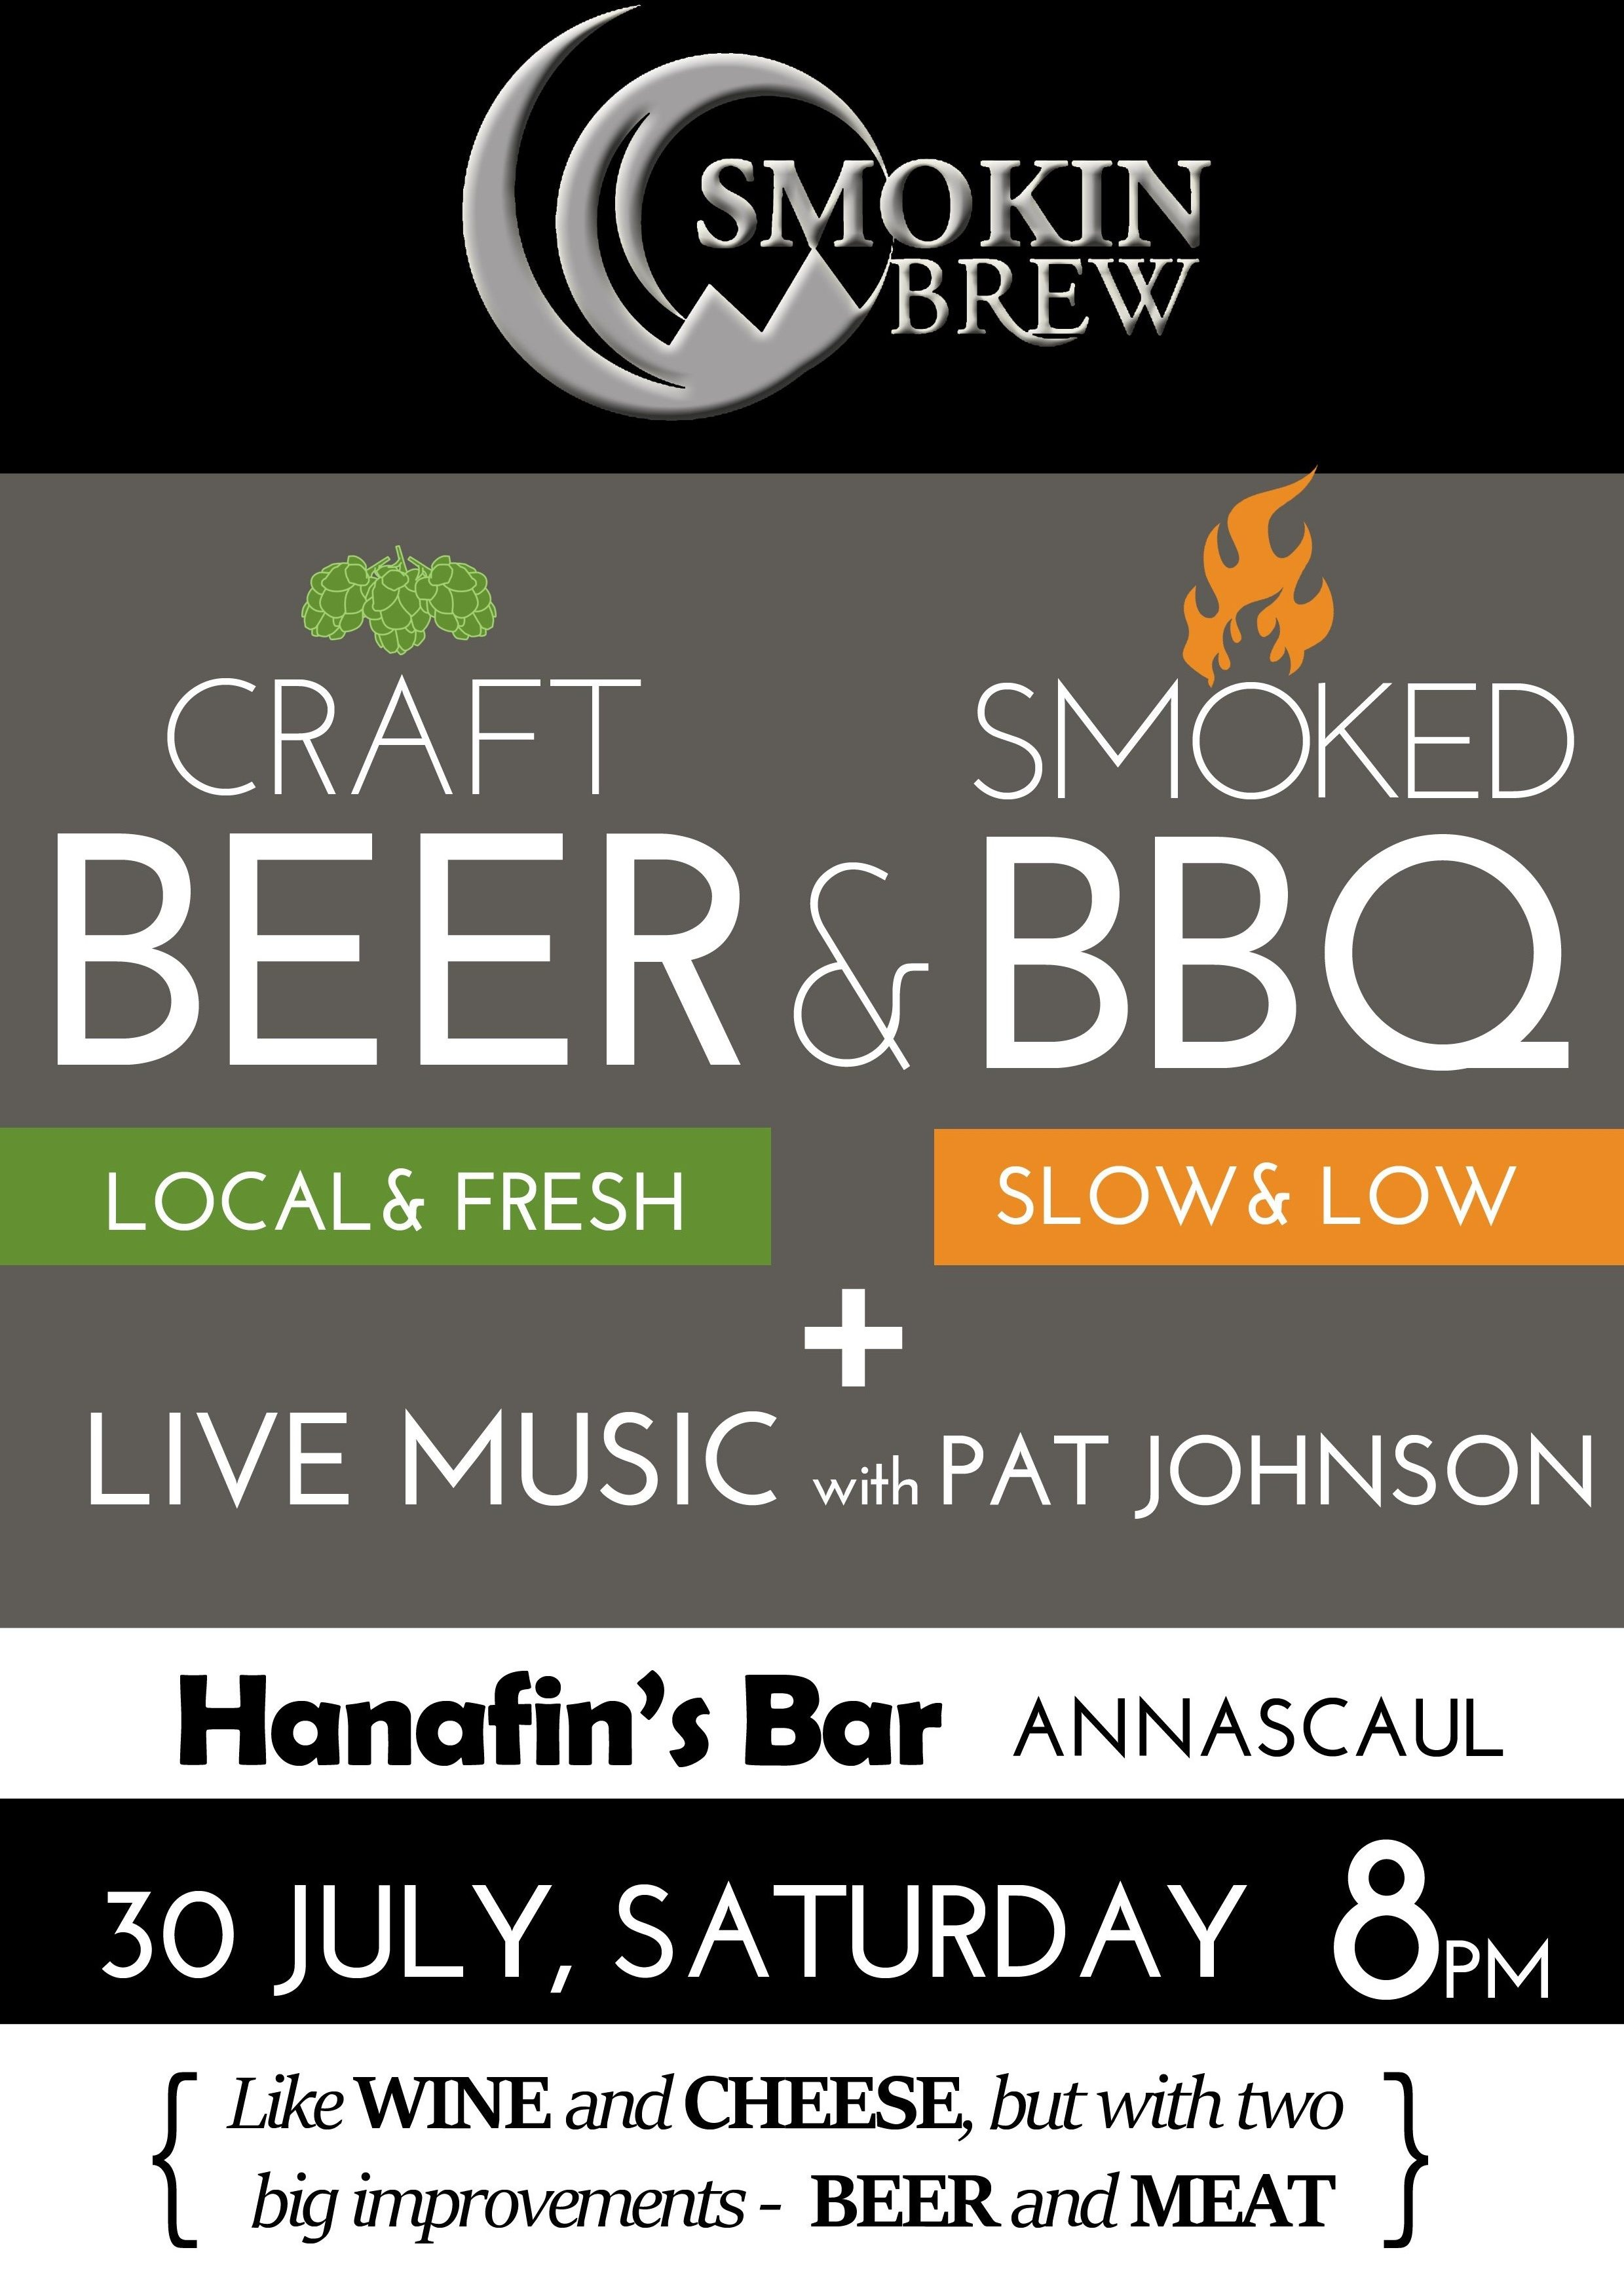 Craft Beer & Smoked Barbeque